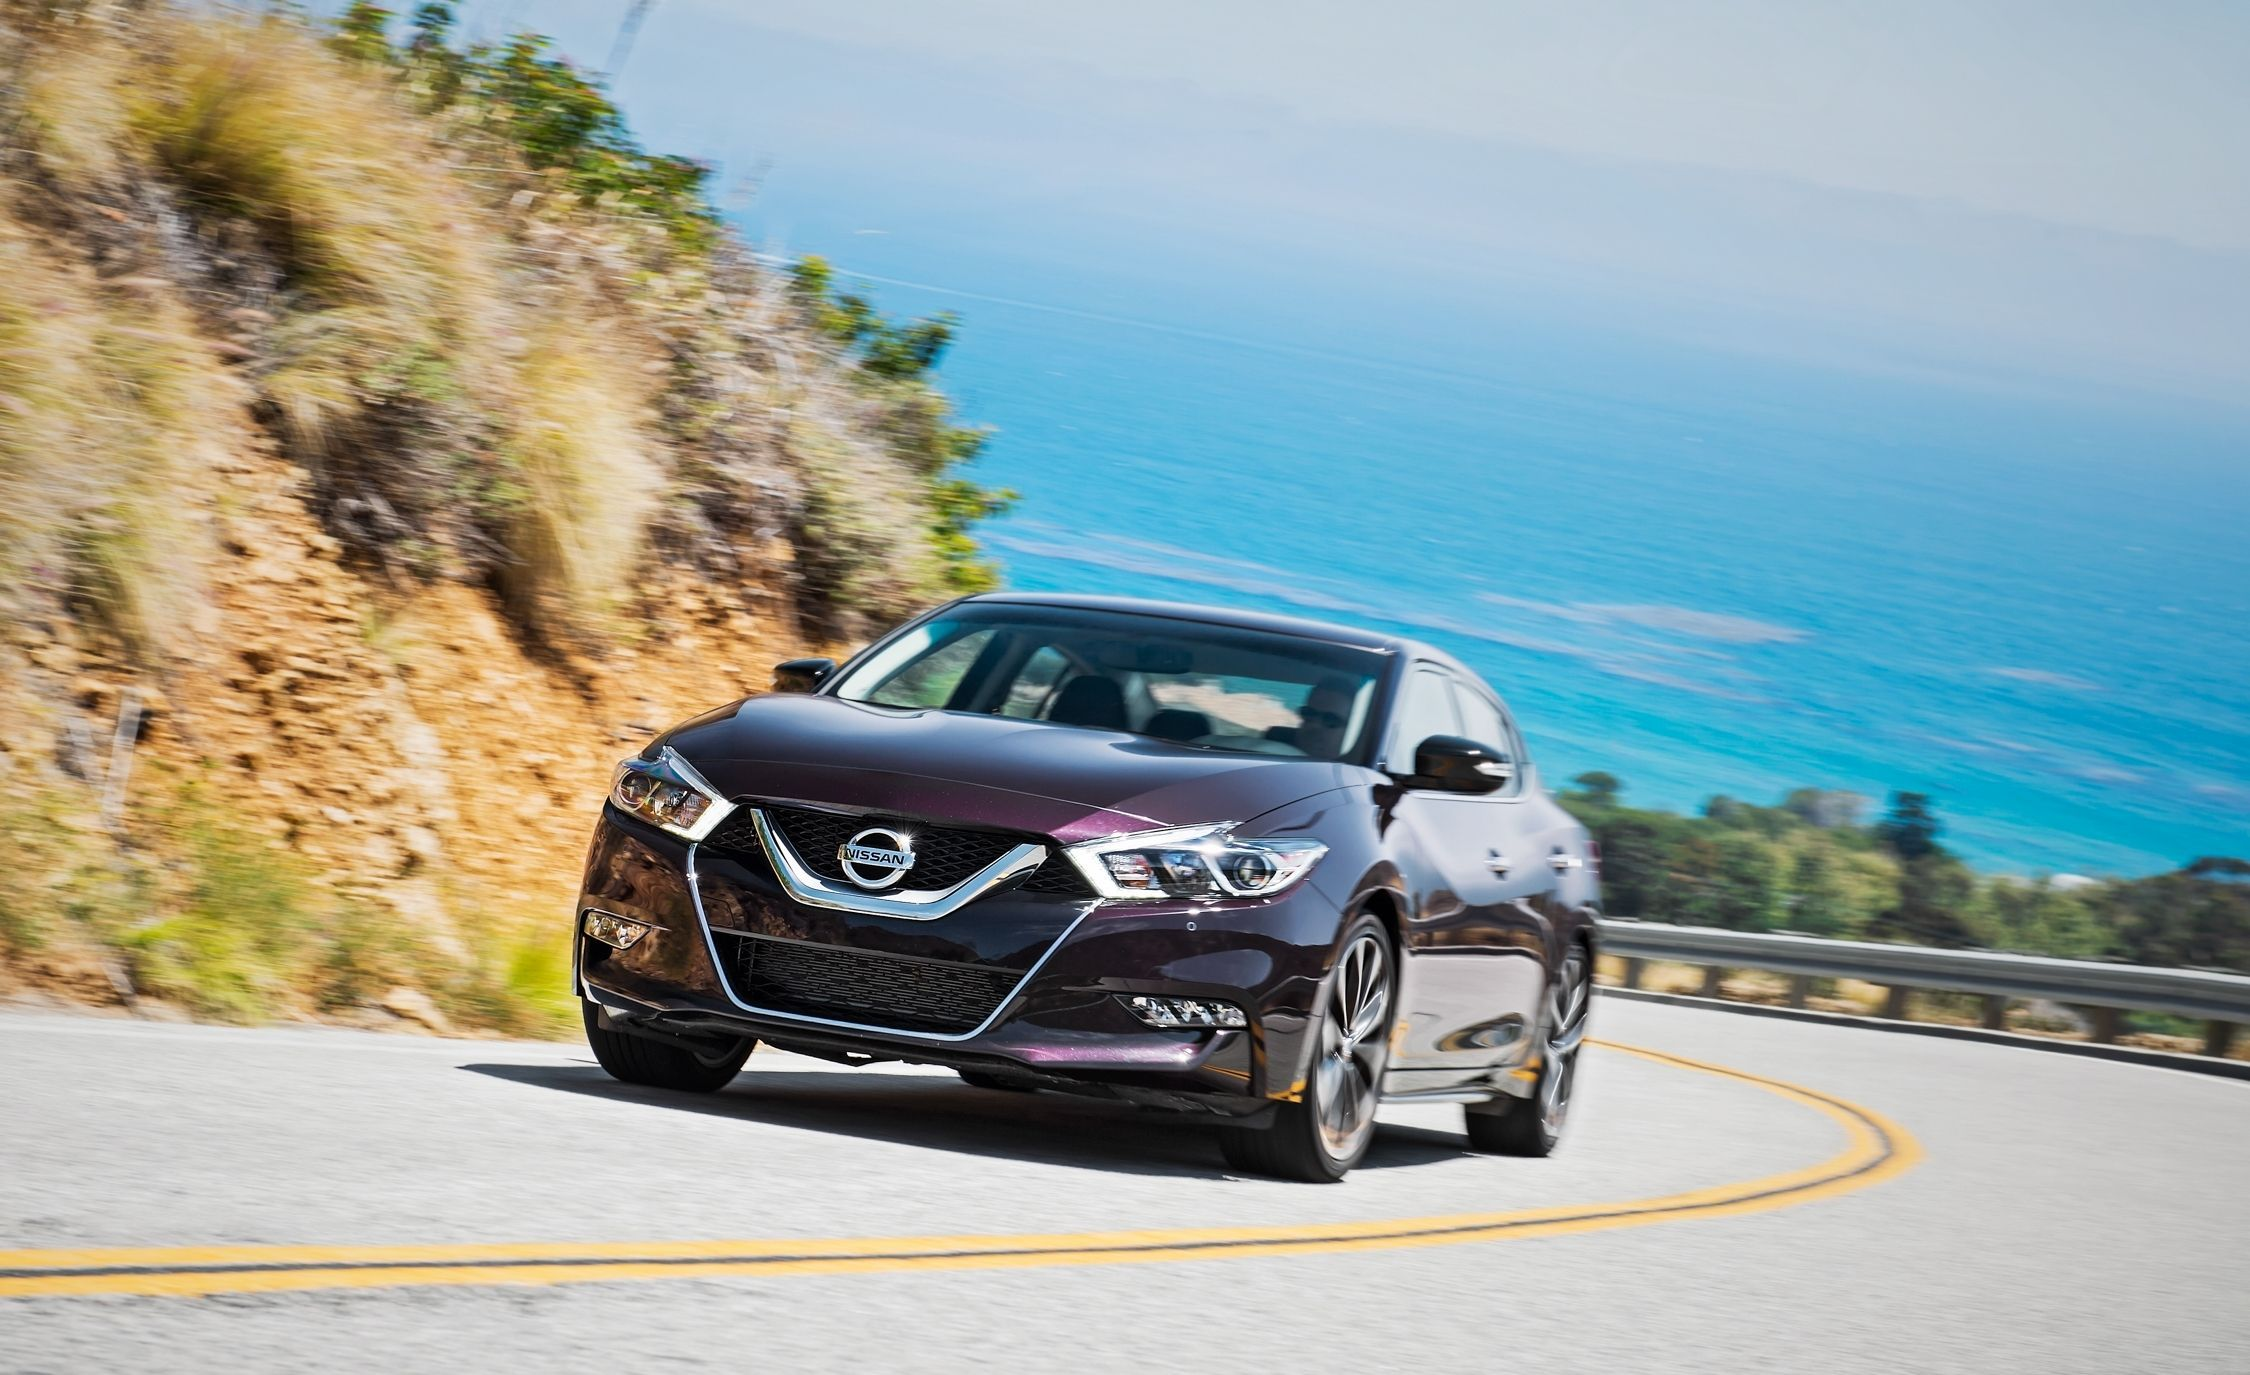 12 New-Car Lease Deals to Make Your Memorial Day Weekend - Slide 5